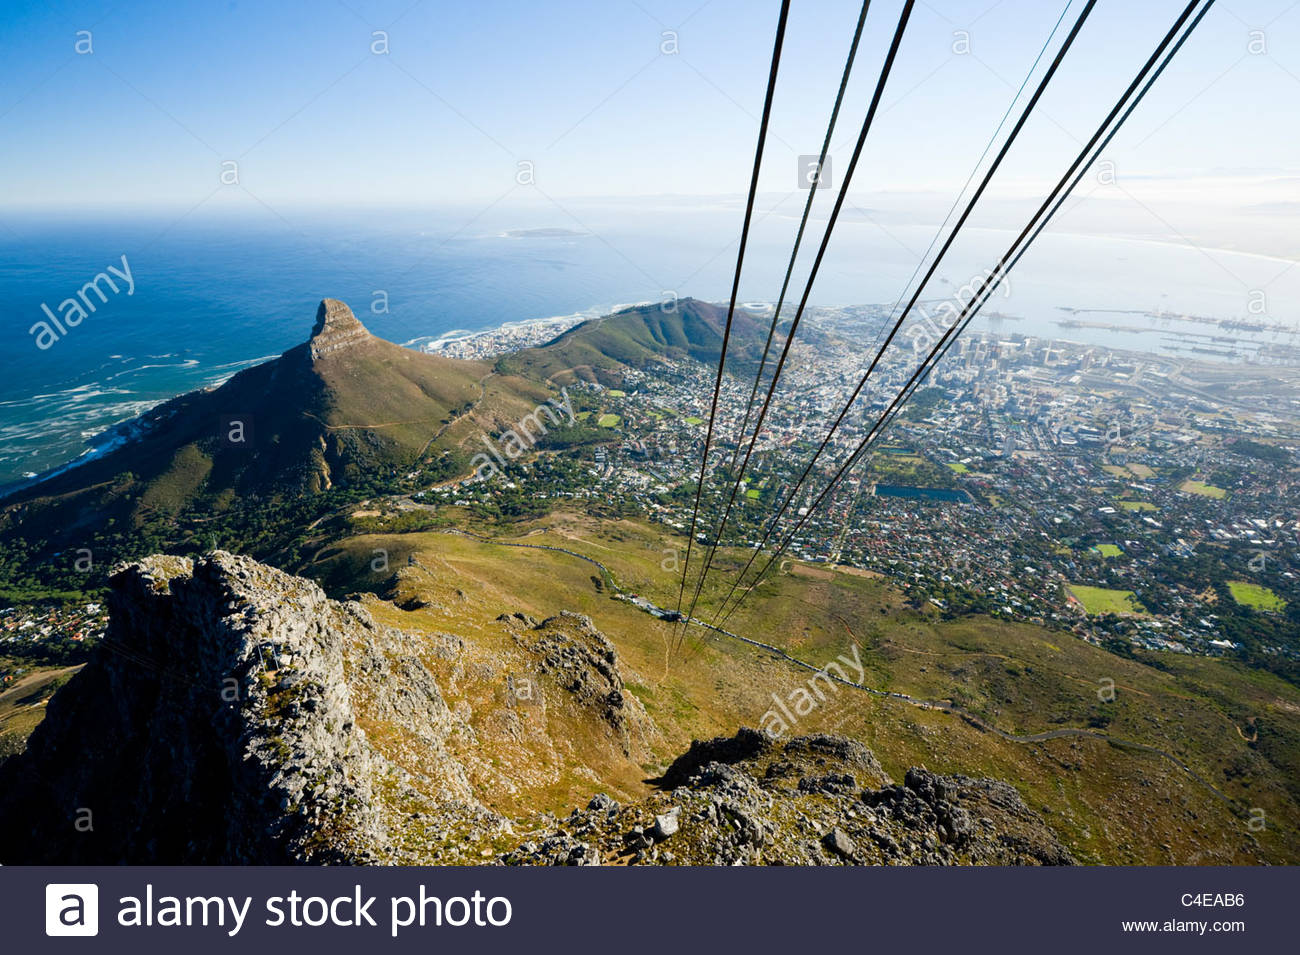 Lion's Head and Cape Town from the cable car up Table Mountain, Cape Town, South Africa. - Stock Image